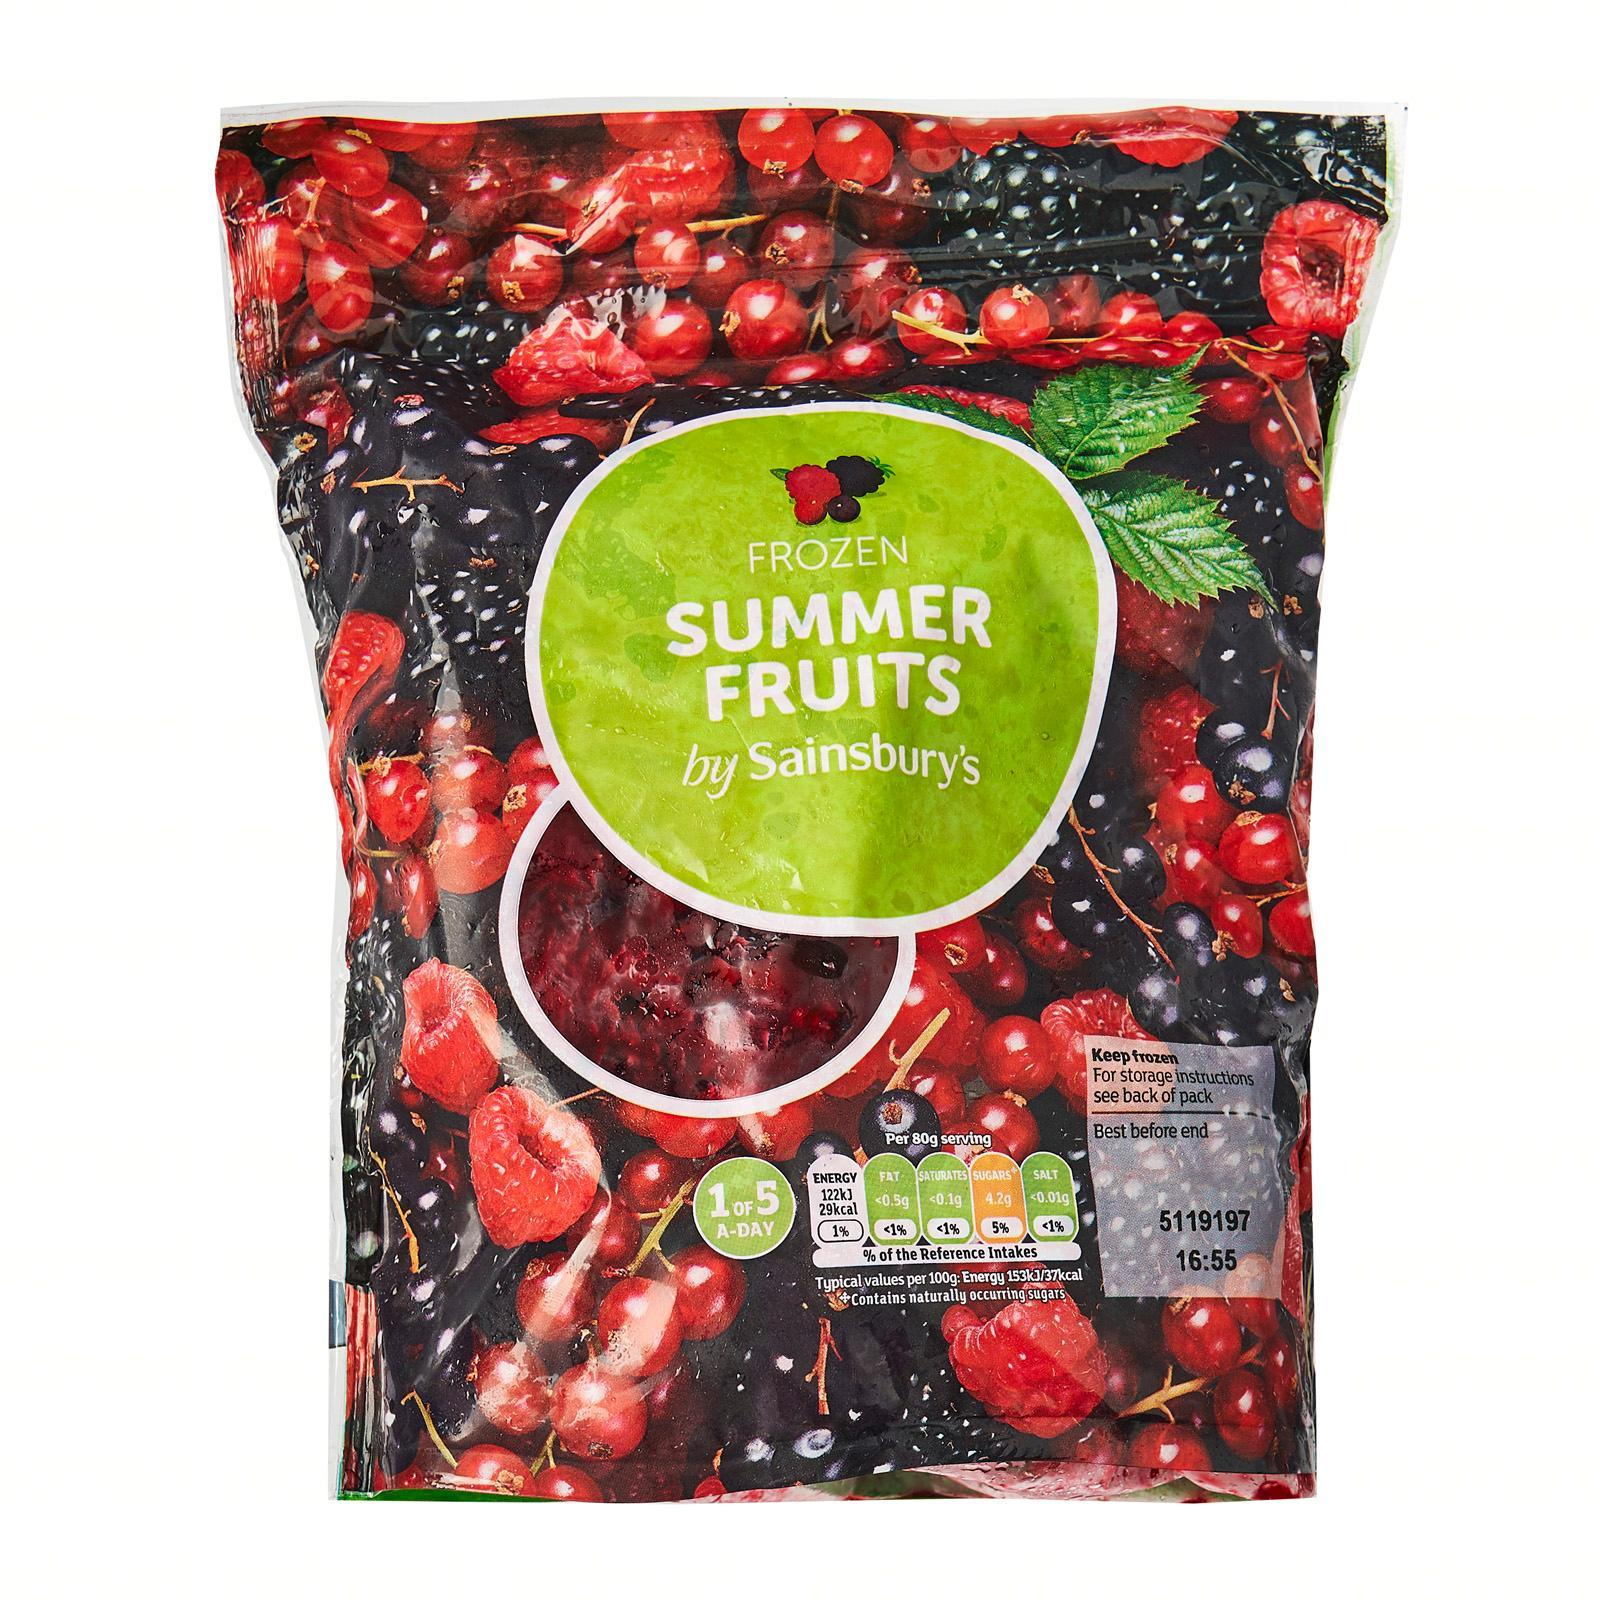 Sainsbury's Summer Fruits Mix - Frozen